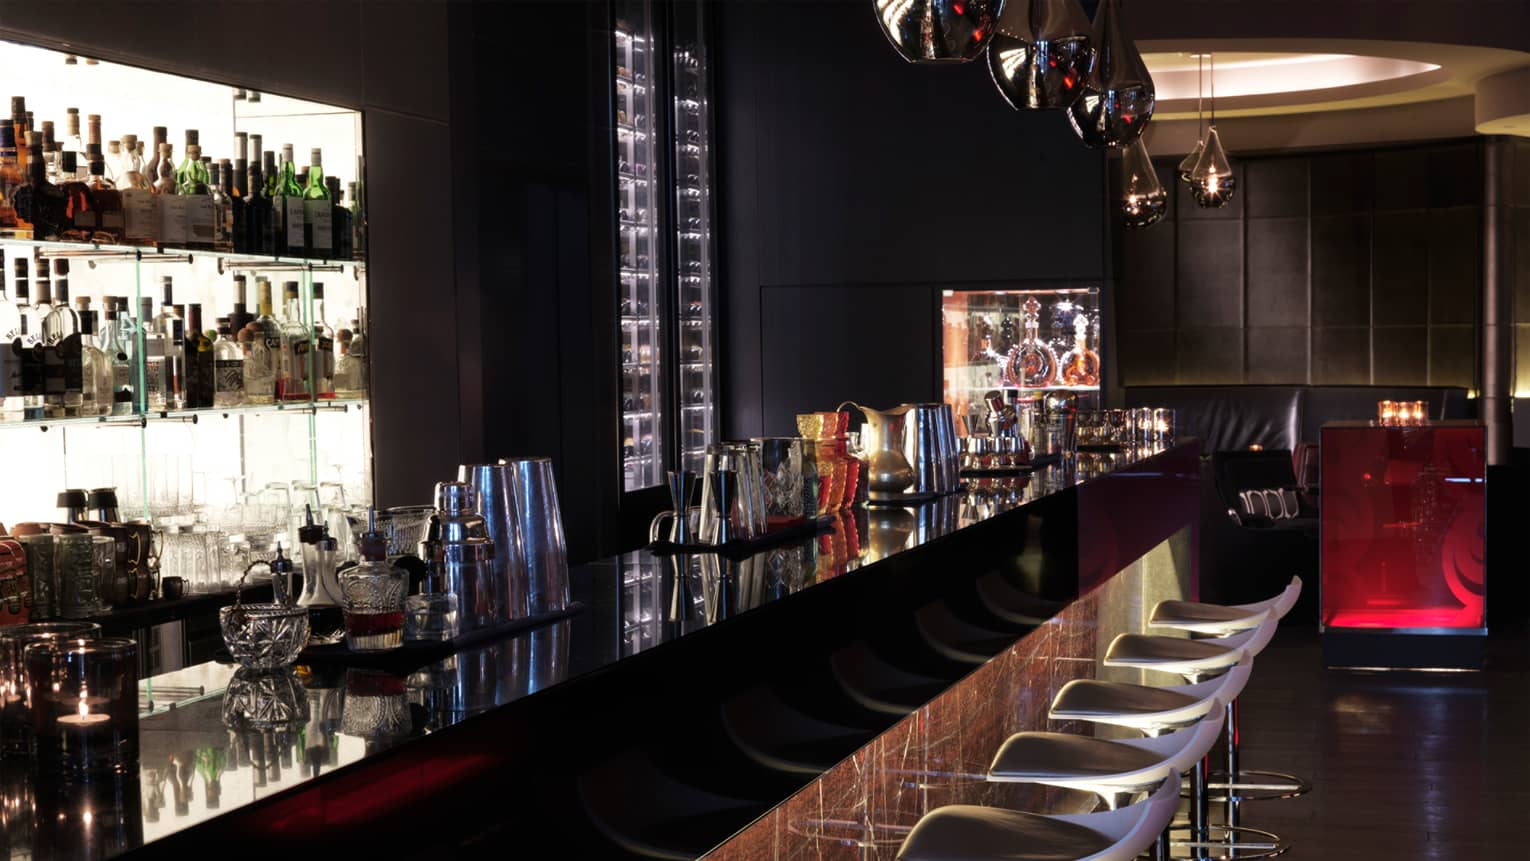 Moskovsky Bar rail at night with silver lanterns, illuminated liquor display, modern white barstools